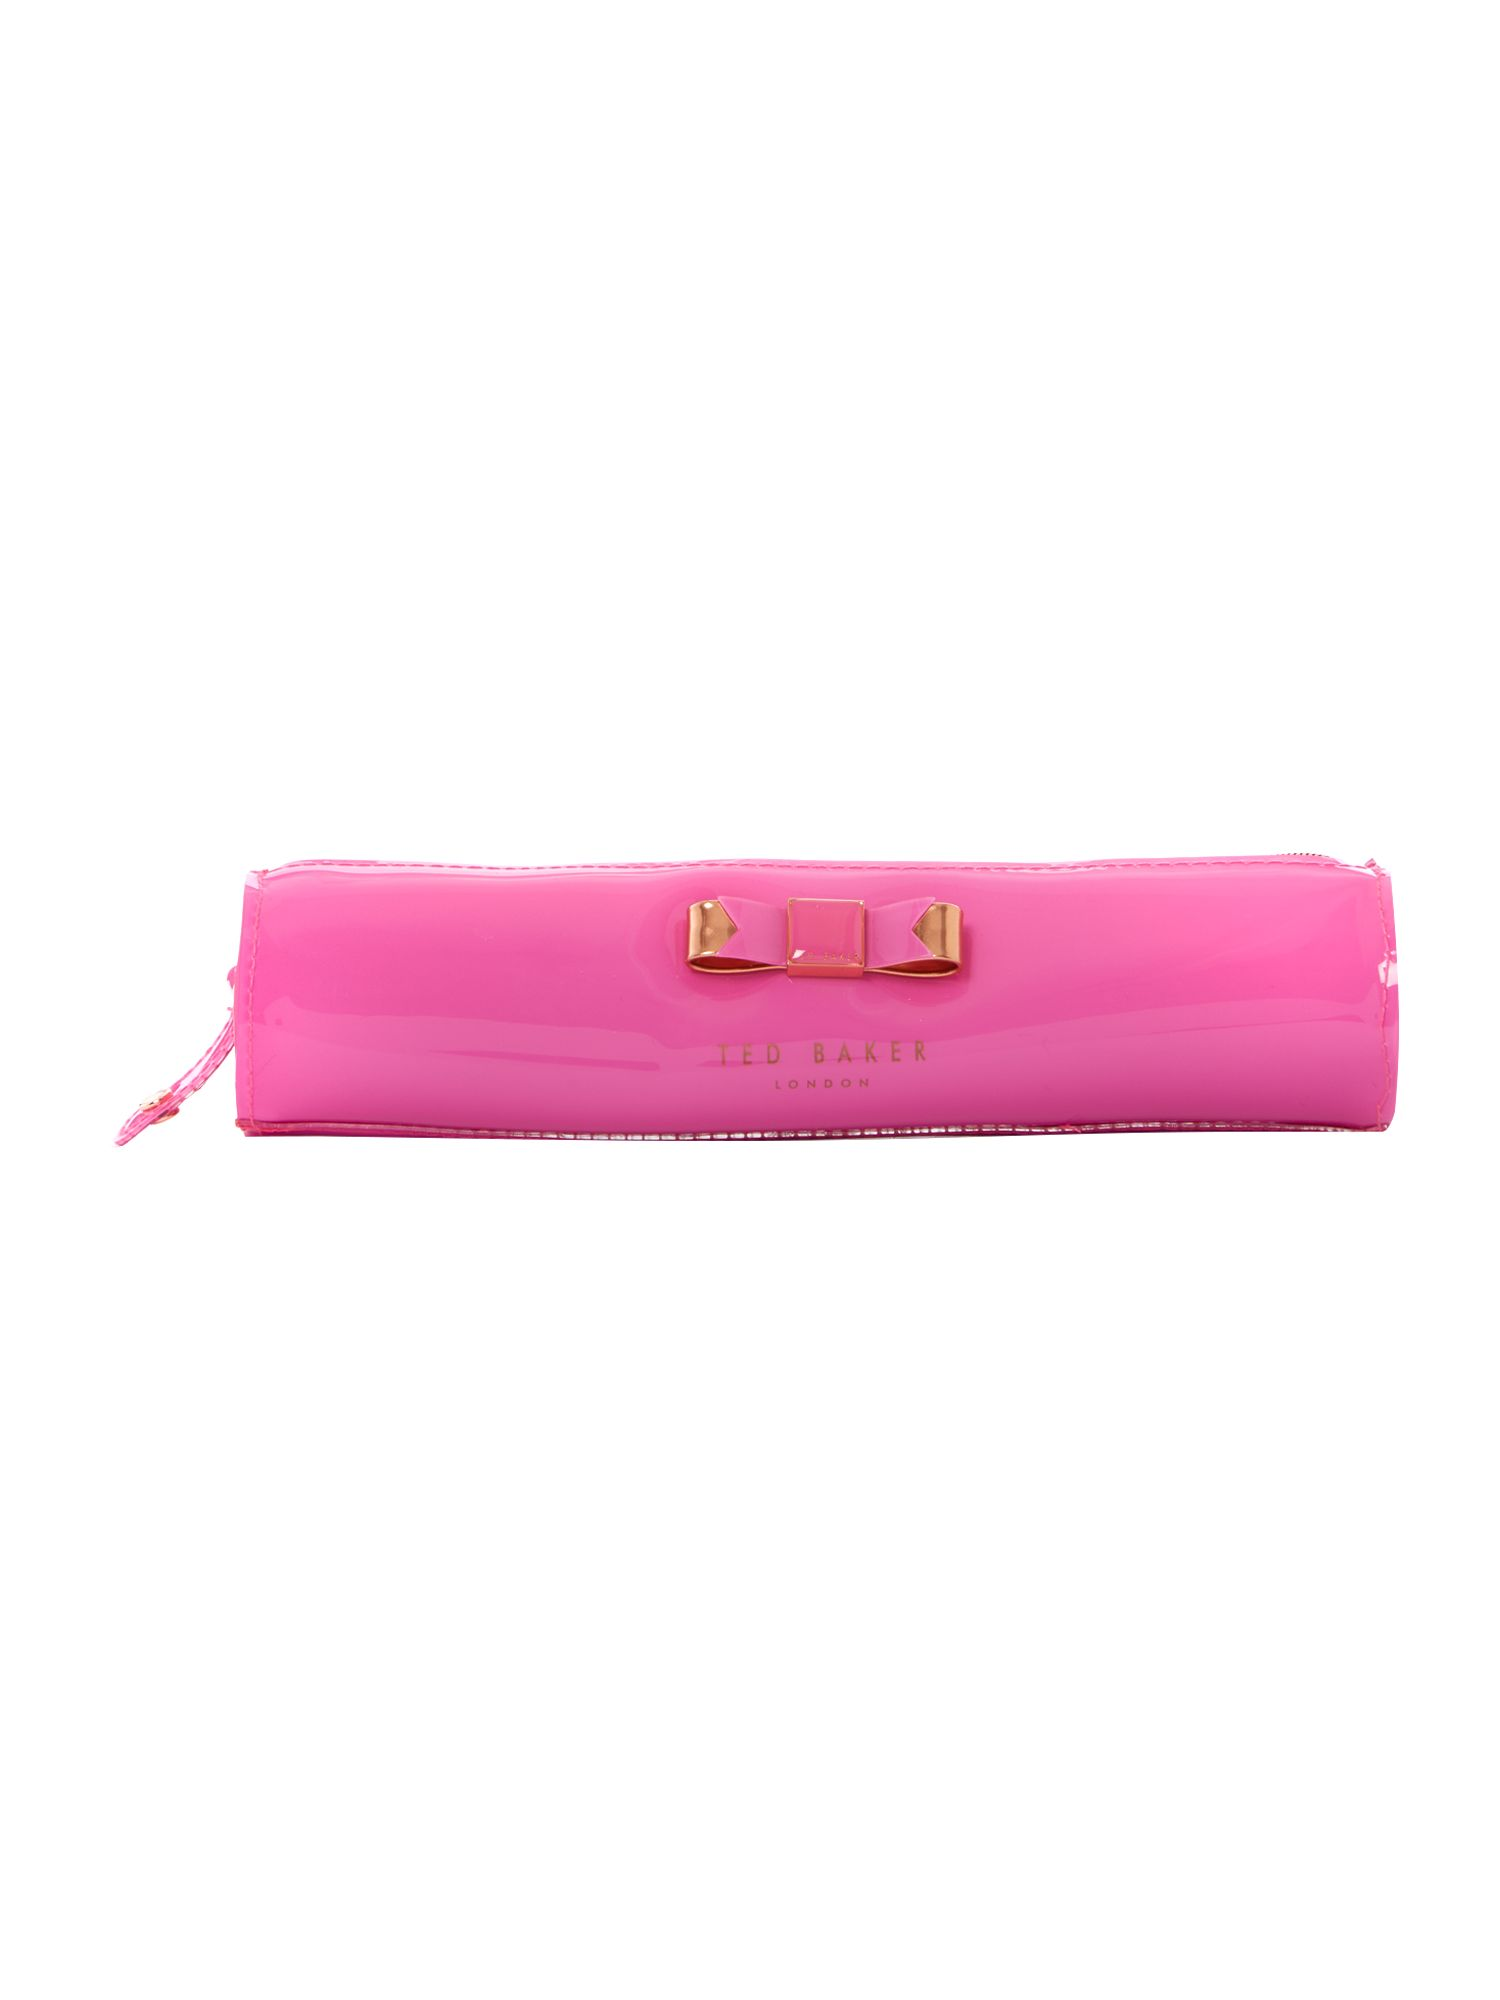 Pink exclusive bowcon pencil case